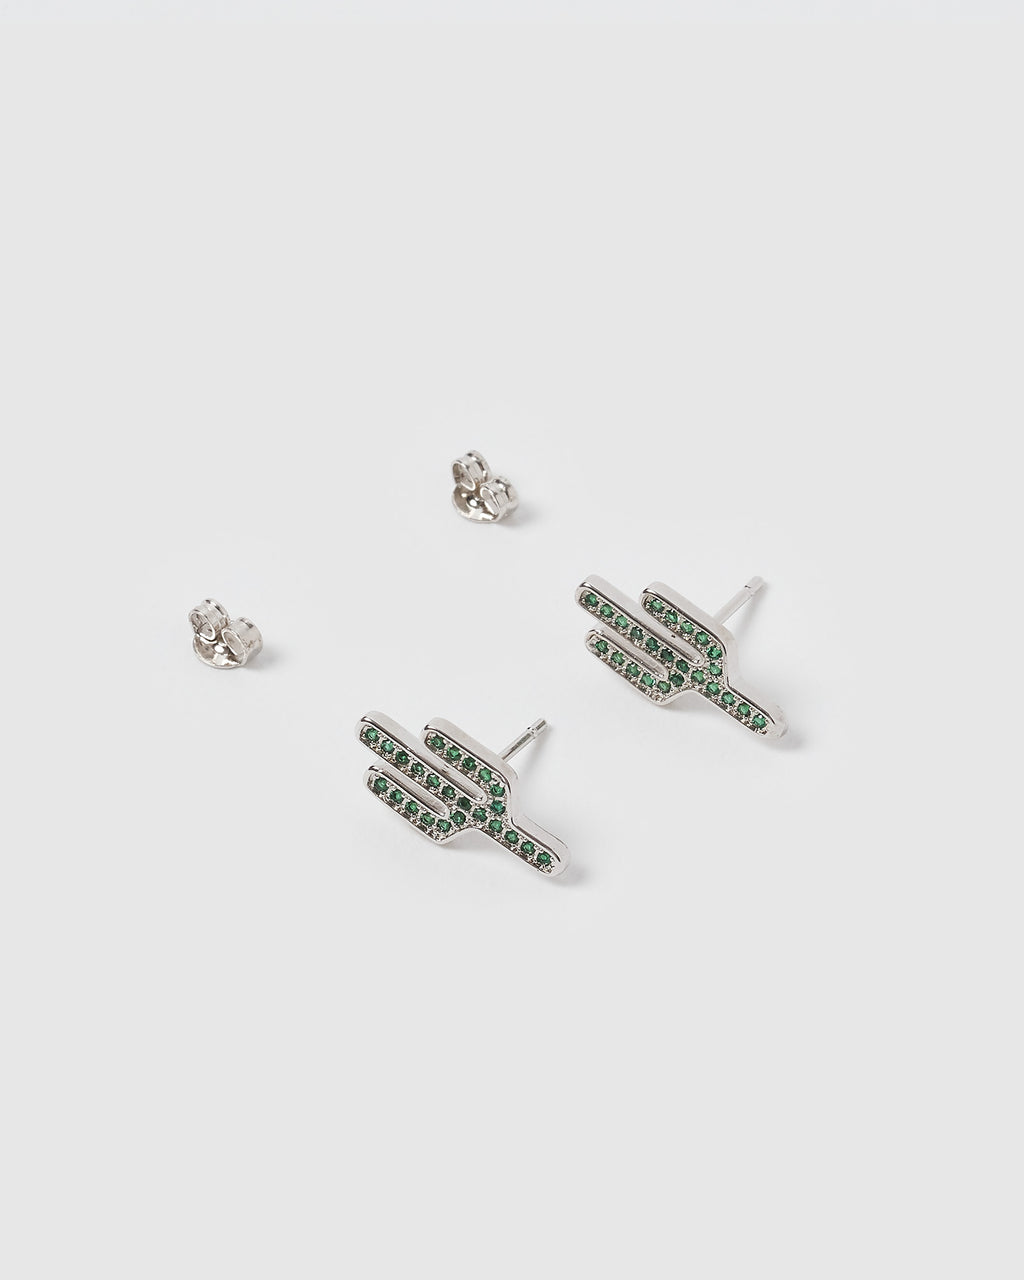 Izoa Saguaro Stud Earrings Silver Green